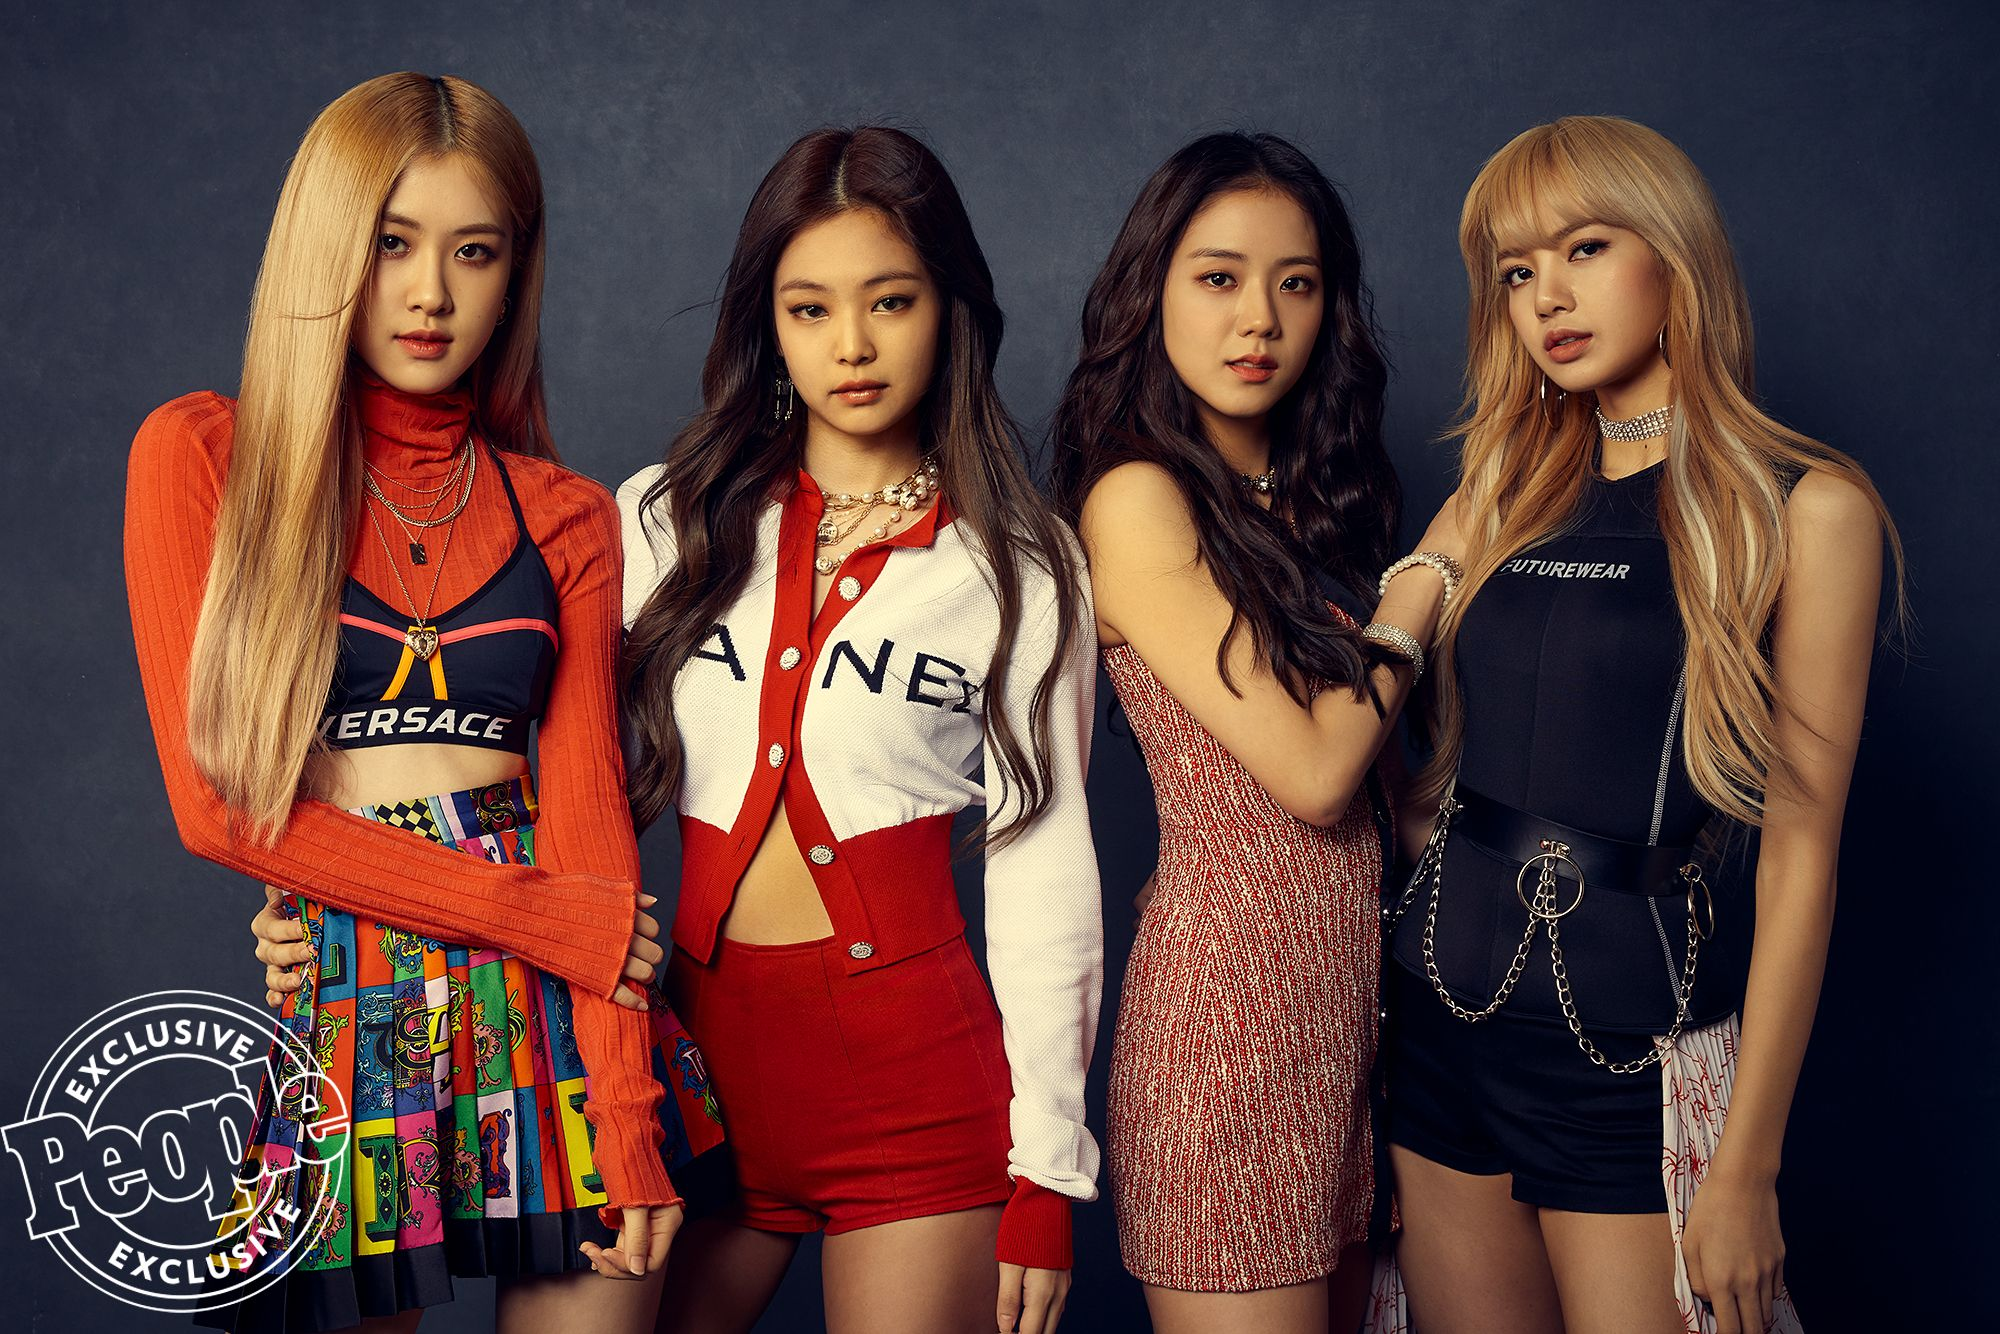 Everything To Know About Blackpink The First Female K Pop Group To Perform At Coachella Blackpink Fashion Blackpink Kpop Girls